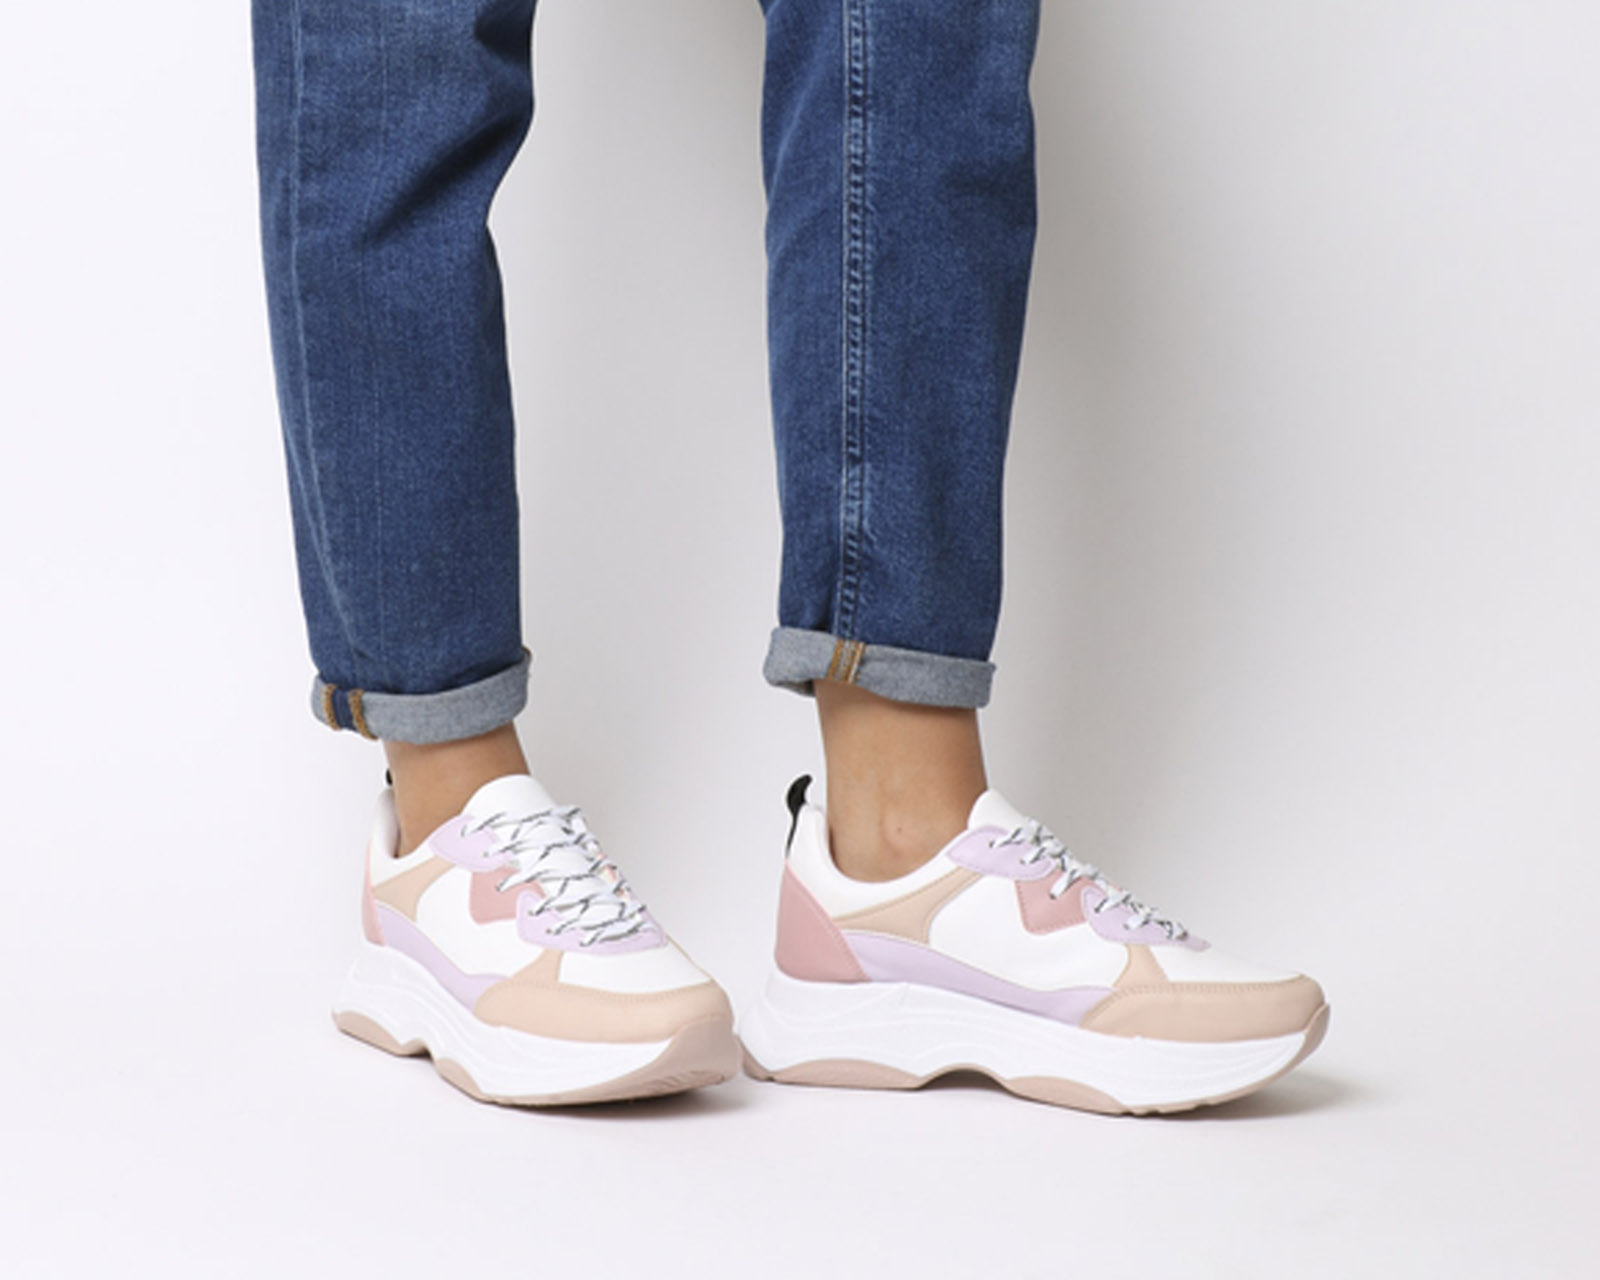 596c30057f204 ... Donna Up Office Fizzled Chunky Lace Up Donna Trainers WHITE NUDE MIX  Trainers Shoes 3e0a87 ...